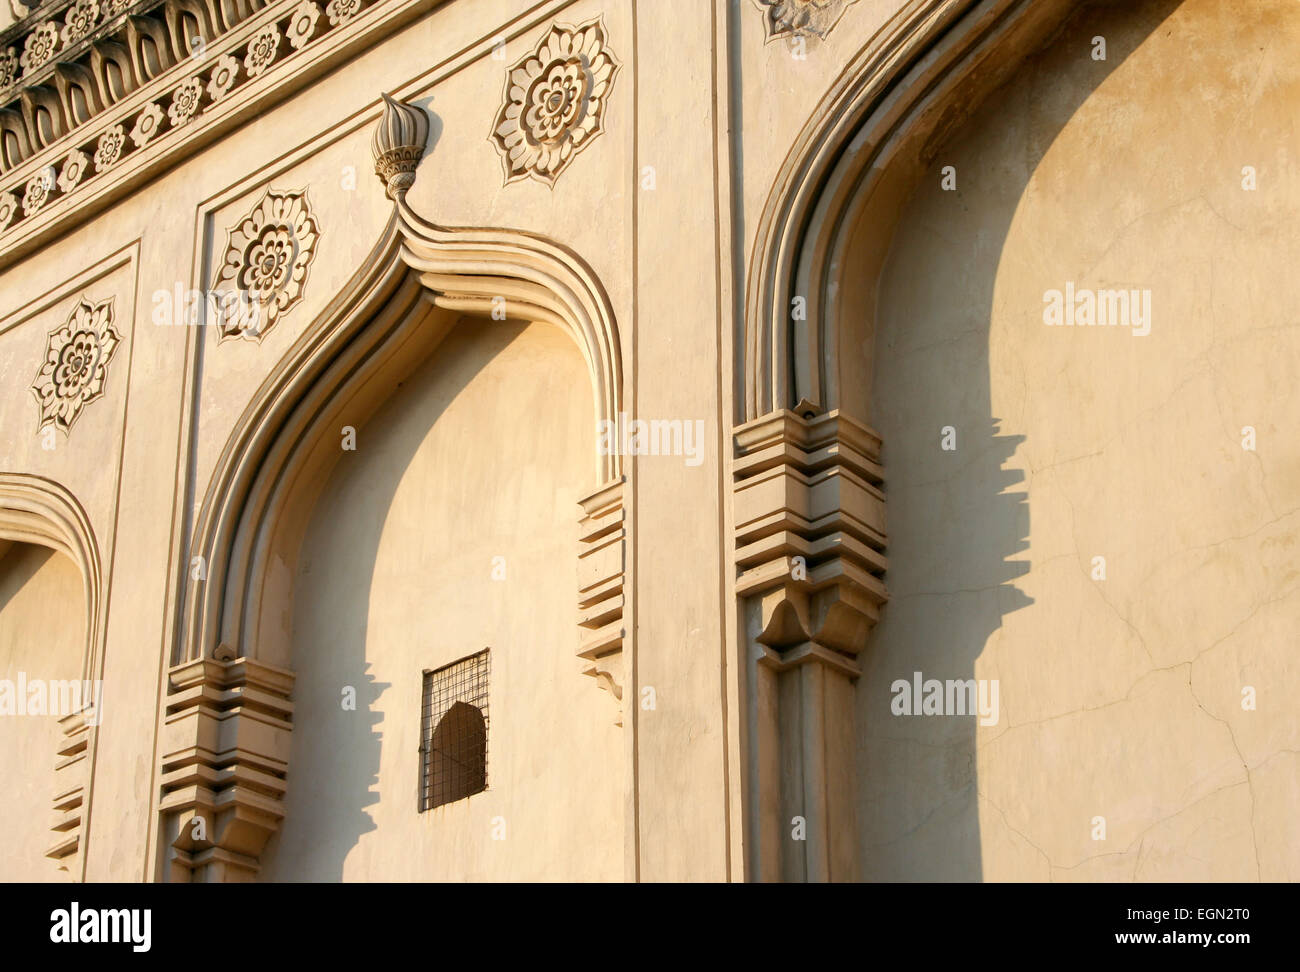 Qutub Shahi dynasty architectural traditions of Qutub Shahi tombs built in 1500's near famous Golkonda Fort - Stock Image